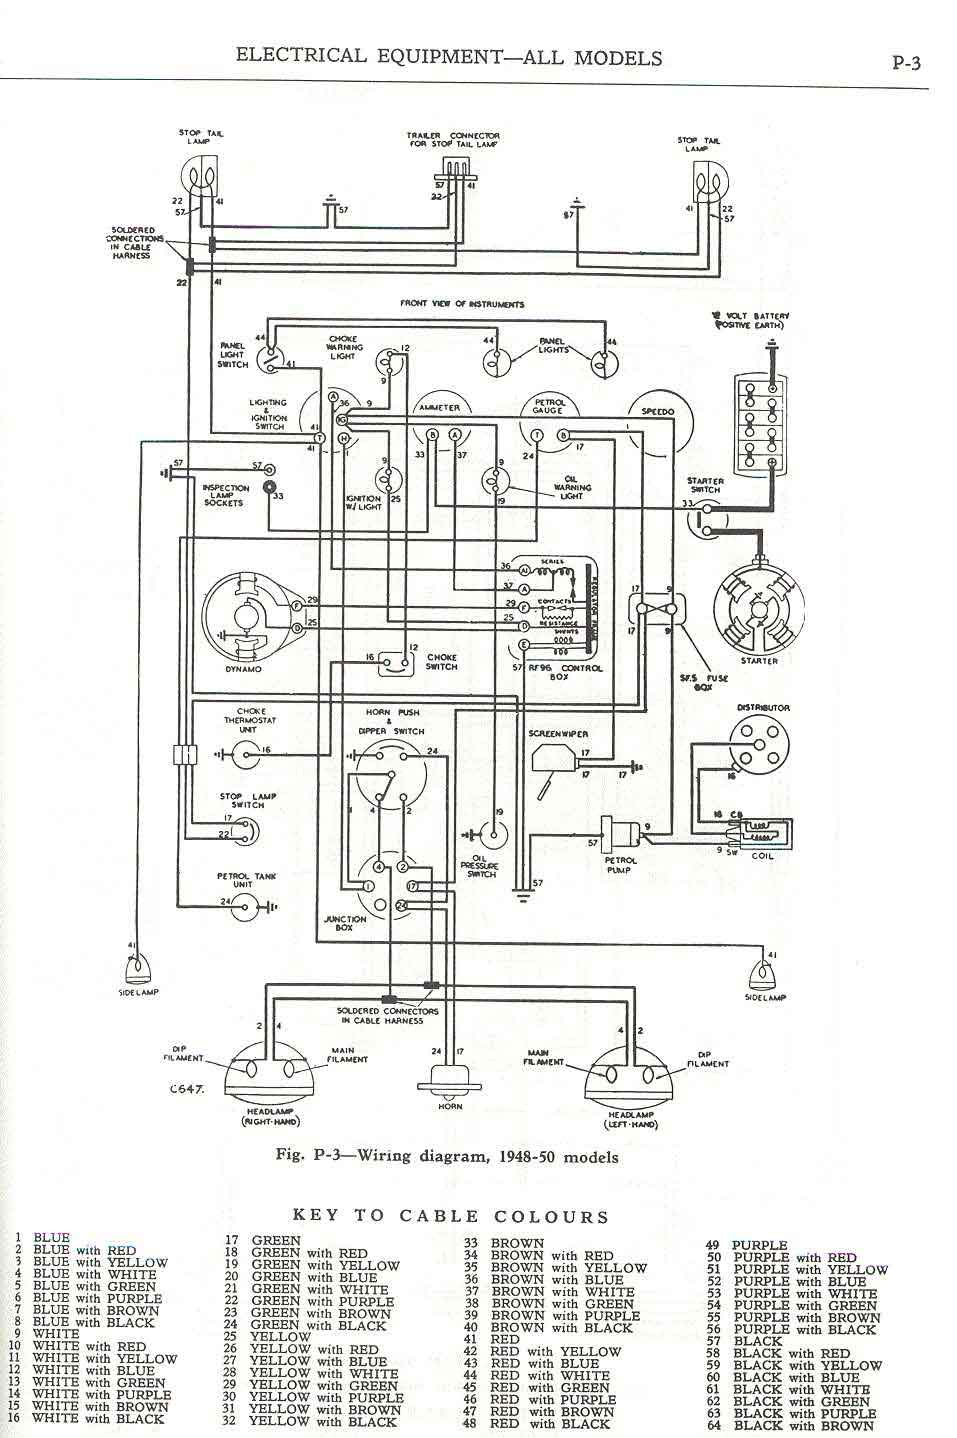 P3 land rover faq repair & maintenance series electrical rover 45 wiring diagram at soozxer.org